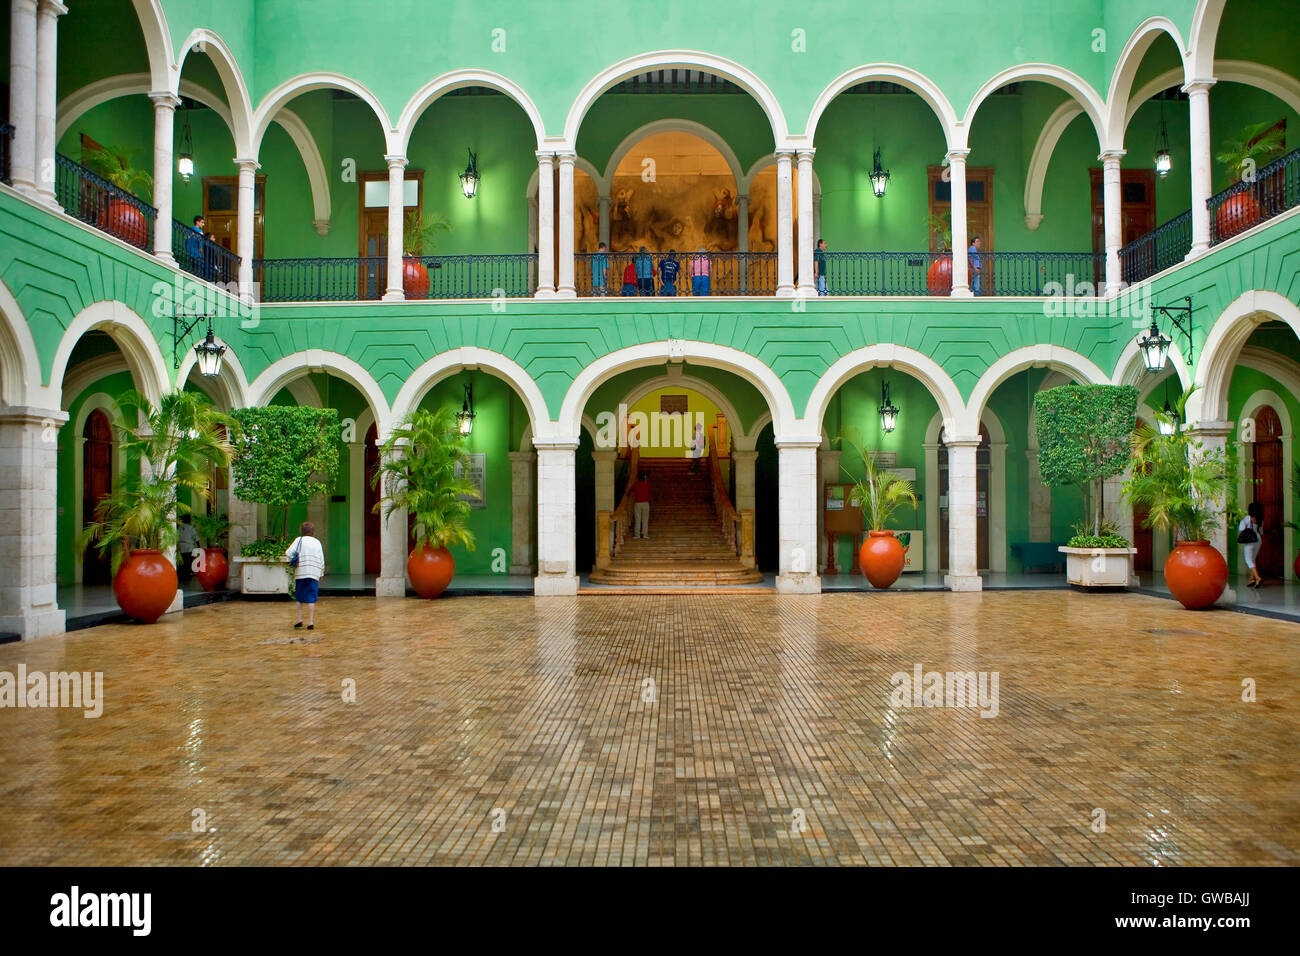 Governor's Palace courtyard in Merida, Yucatan, Mexico - Stock Image